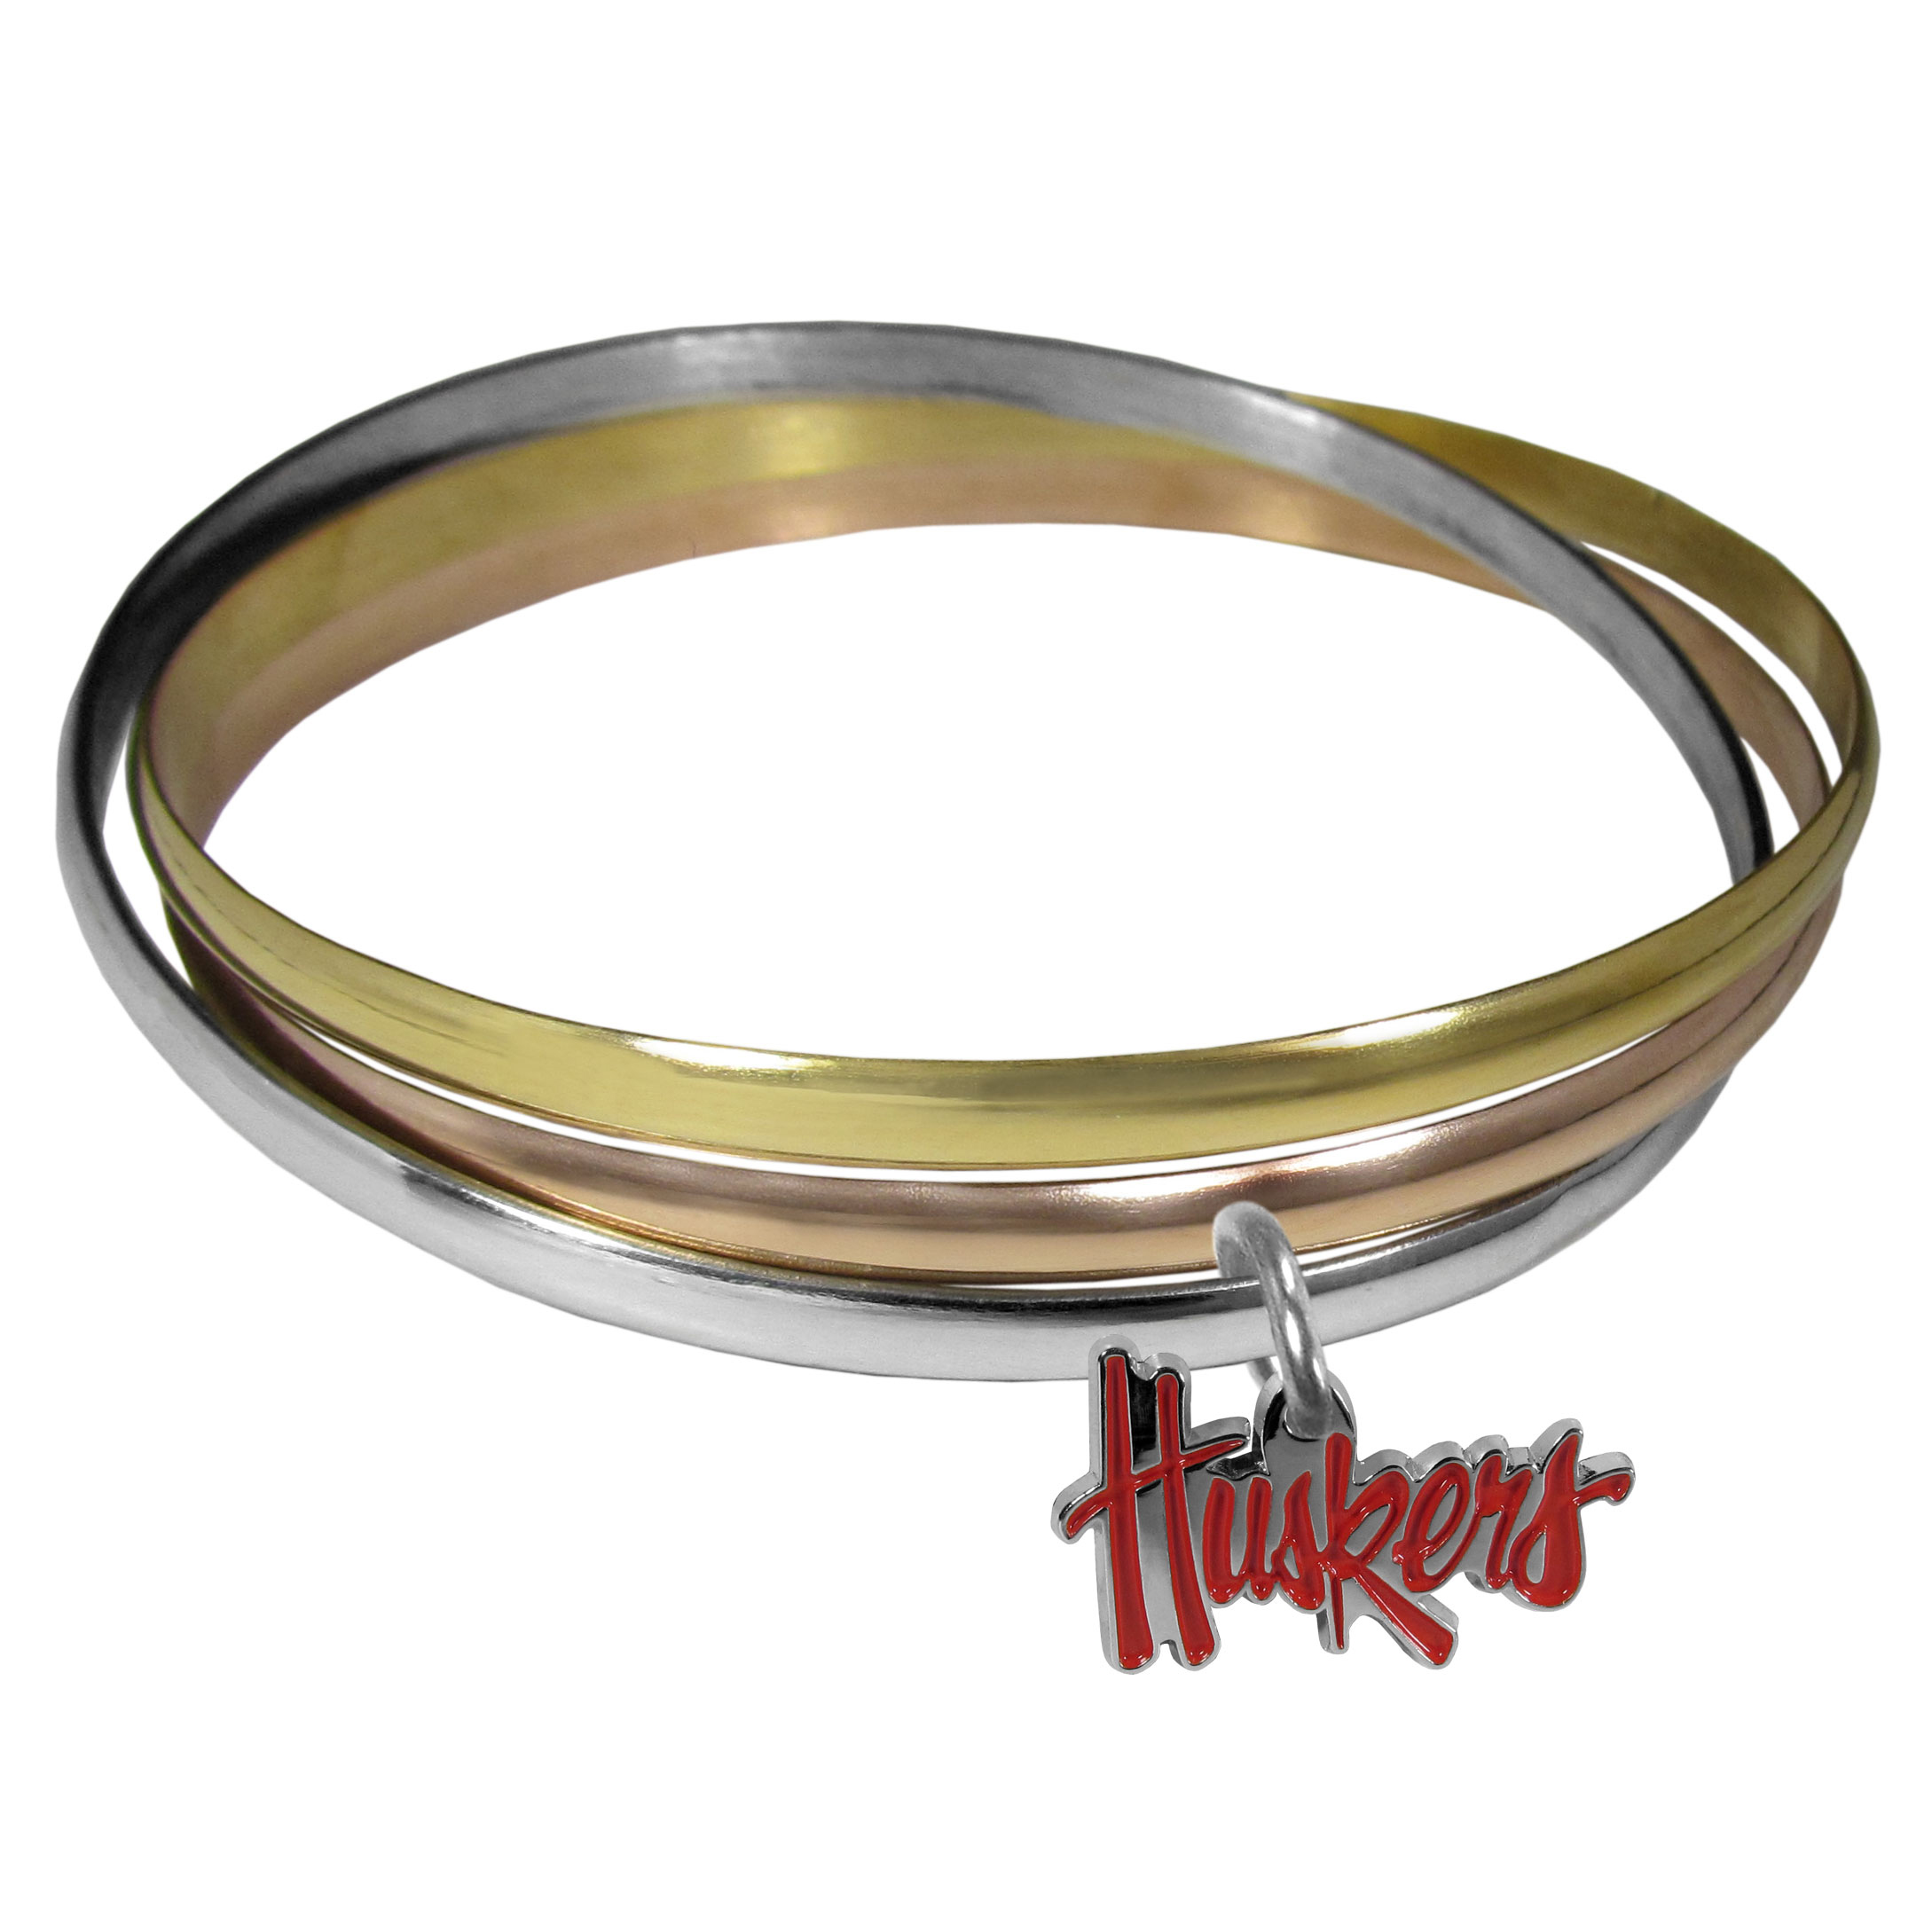 Nebraska Cornhuskers Tri-color Bangle Bracelet - These beautiful bangles come in a interlocking style and feature a fully cast Nebraska Cornhuskers charm with enameled team colors. The bracelet has a silver toned bangle, gold tone bangle and brass toned bangle.